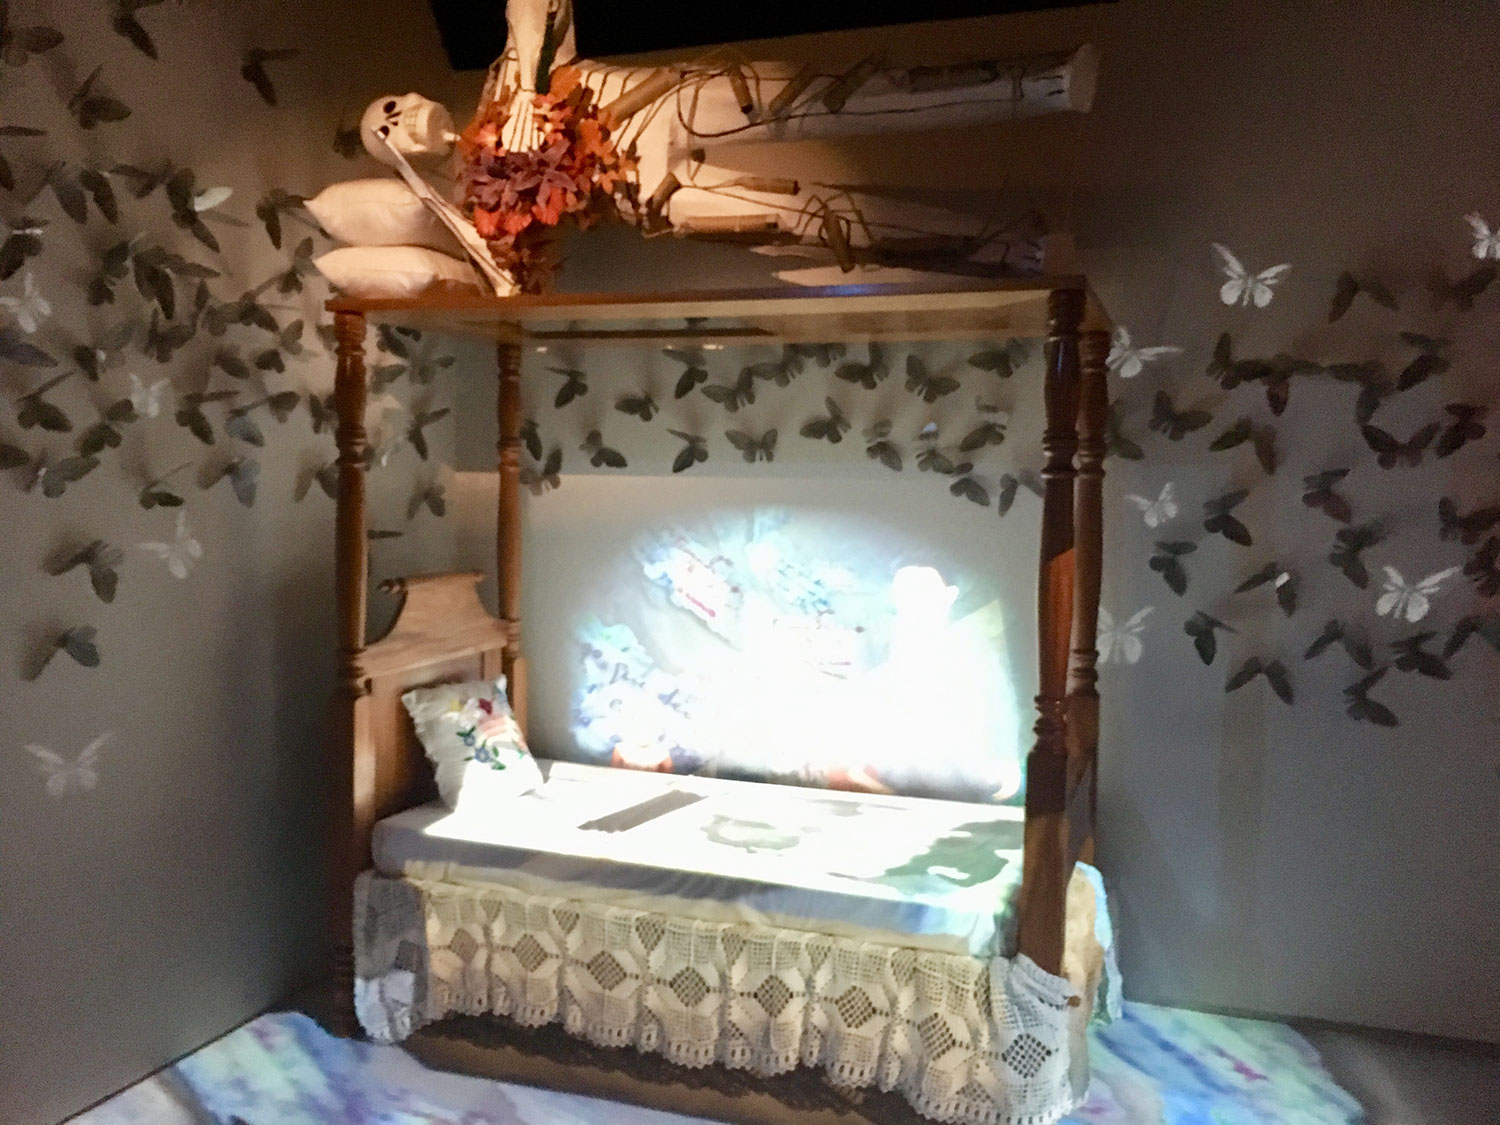 Frida's bed with the moving image and the butterflies.